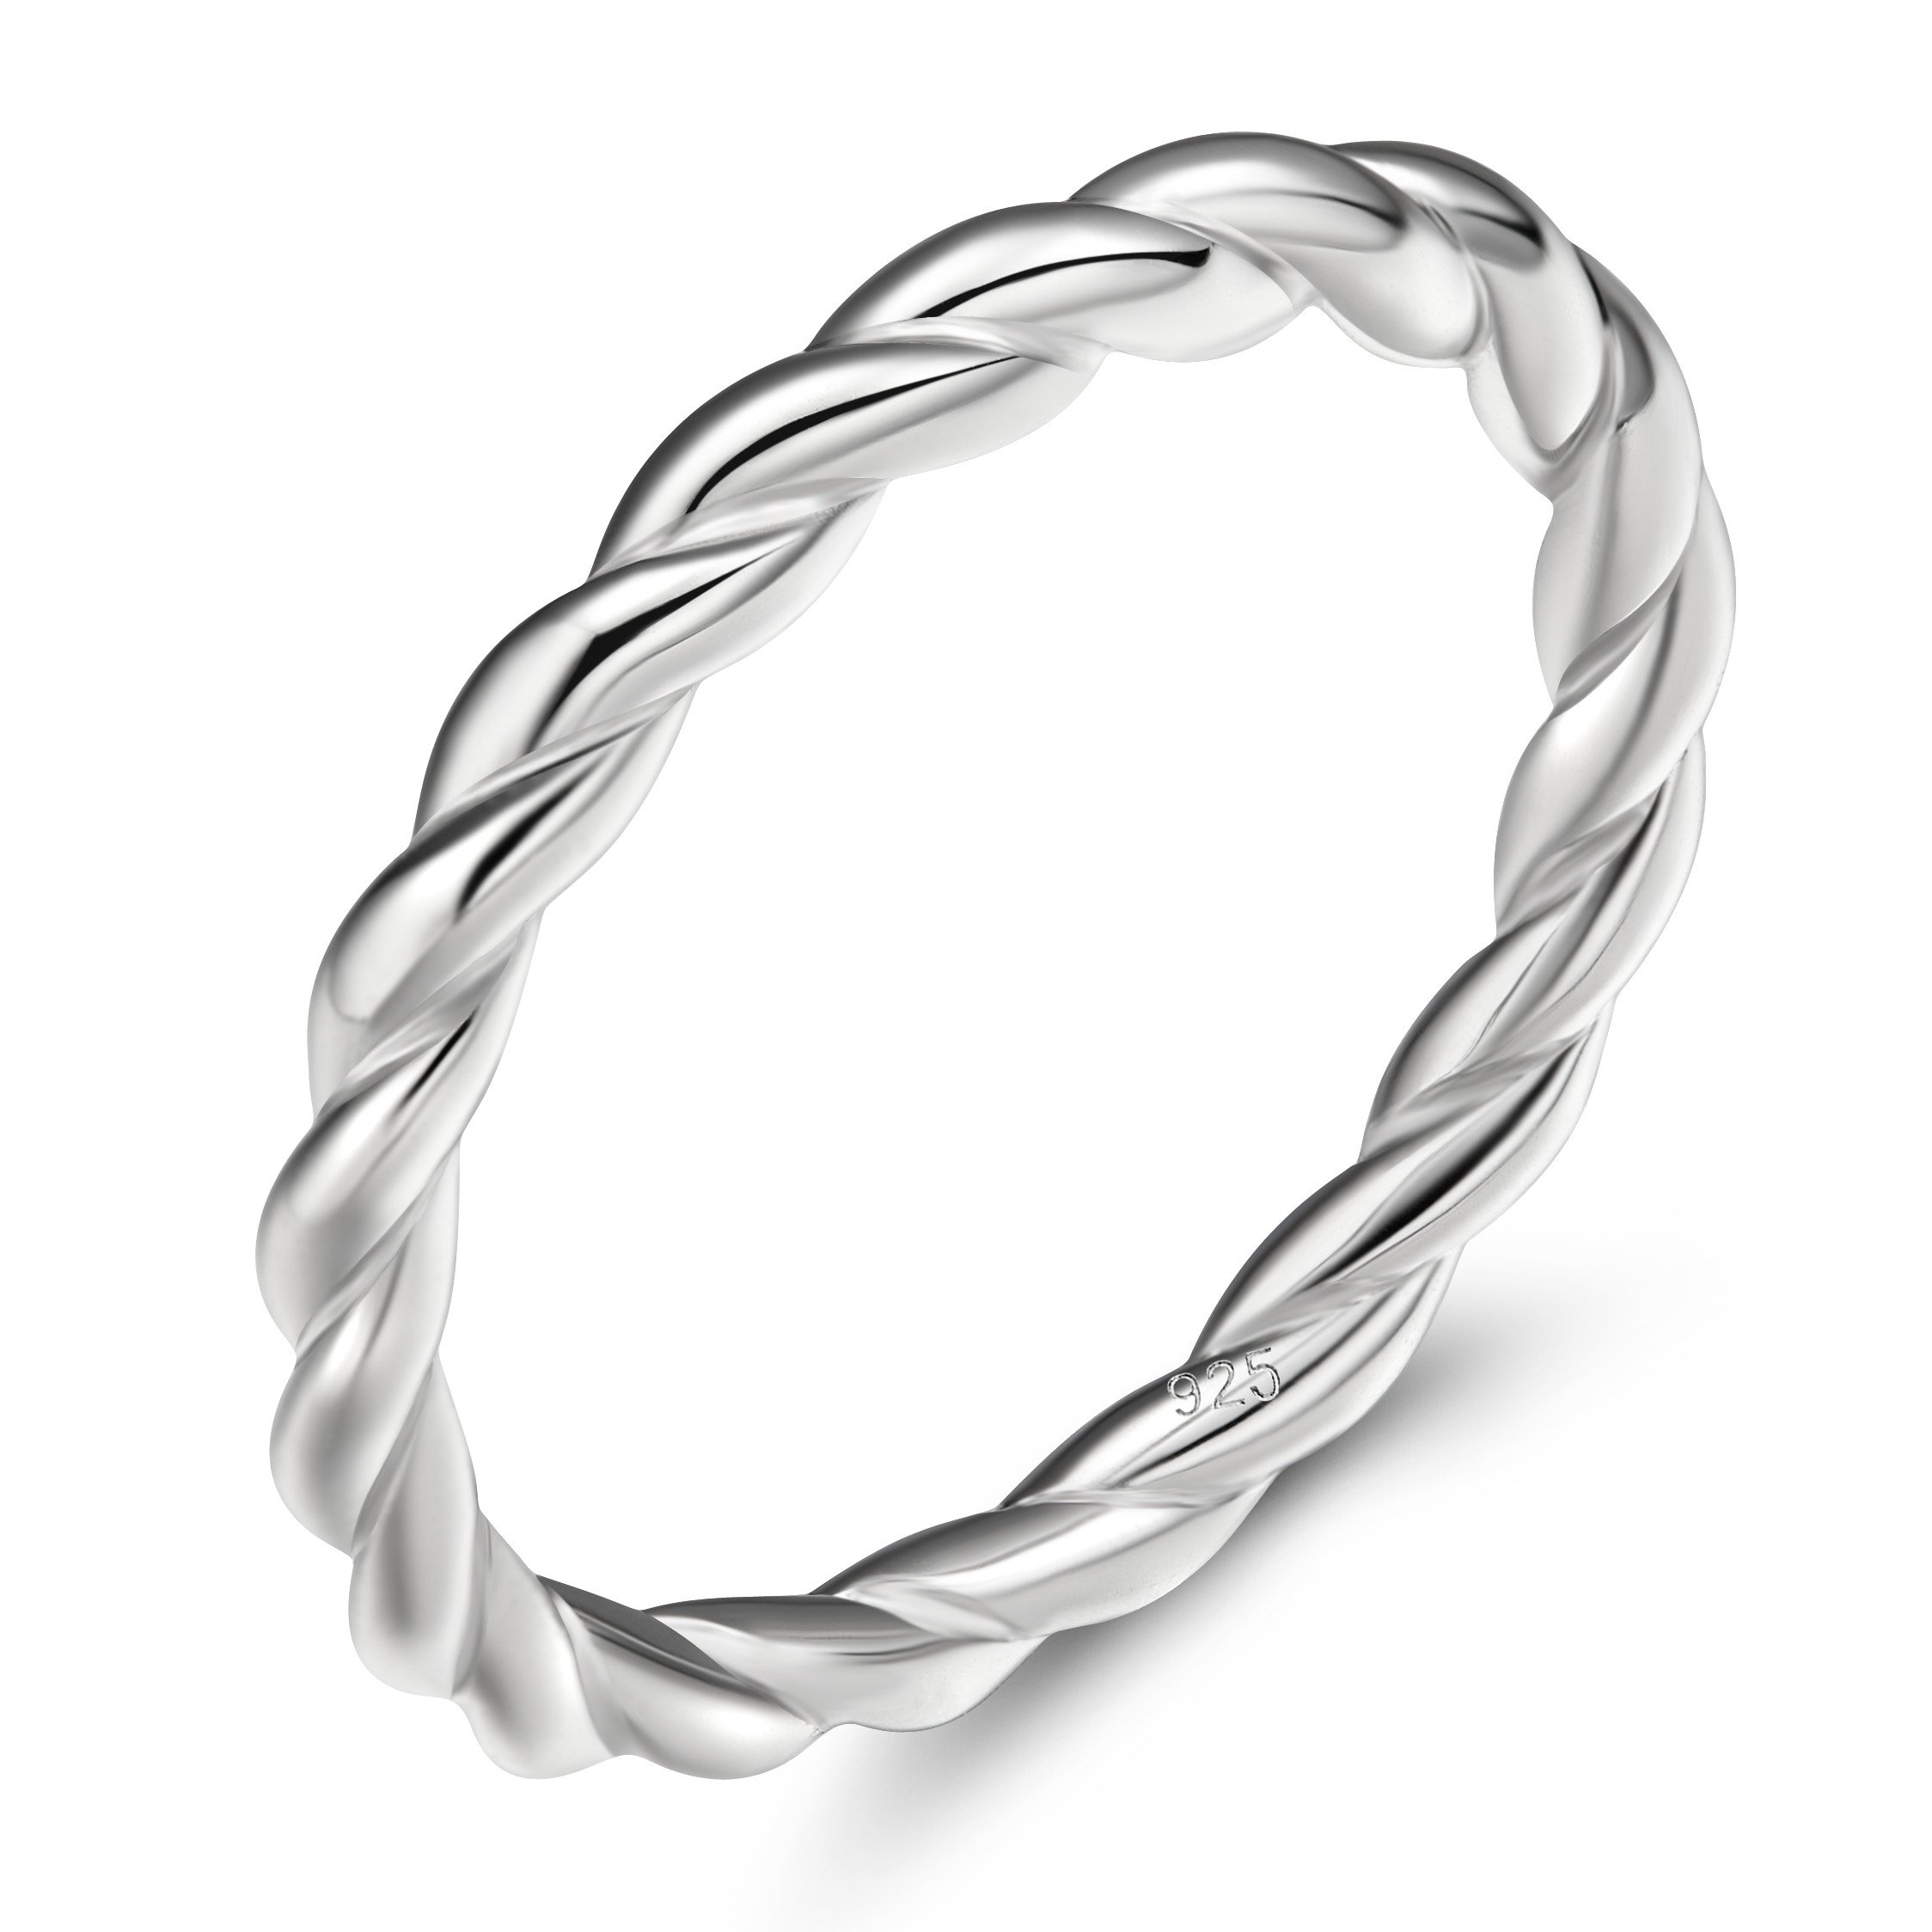 EAMTI 925 Sterling Silver Ring 2mm Stacking Twist Rope Ring Engagement Wedding Band Size 4